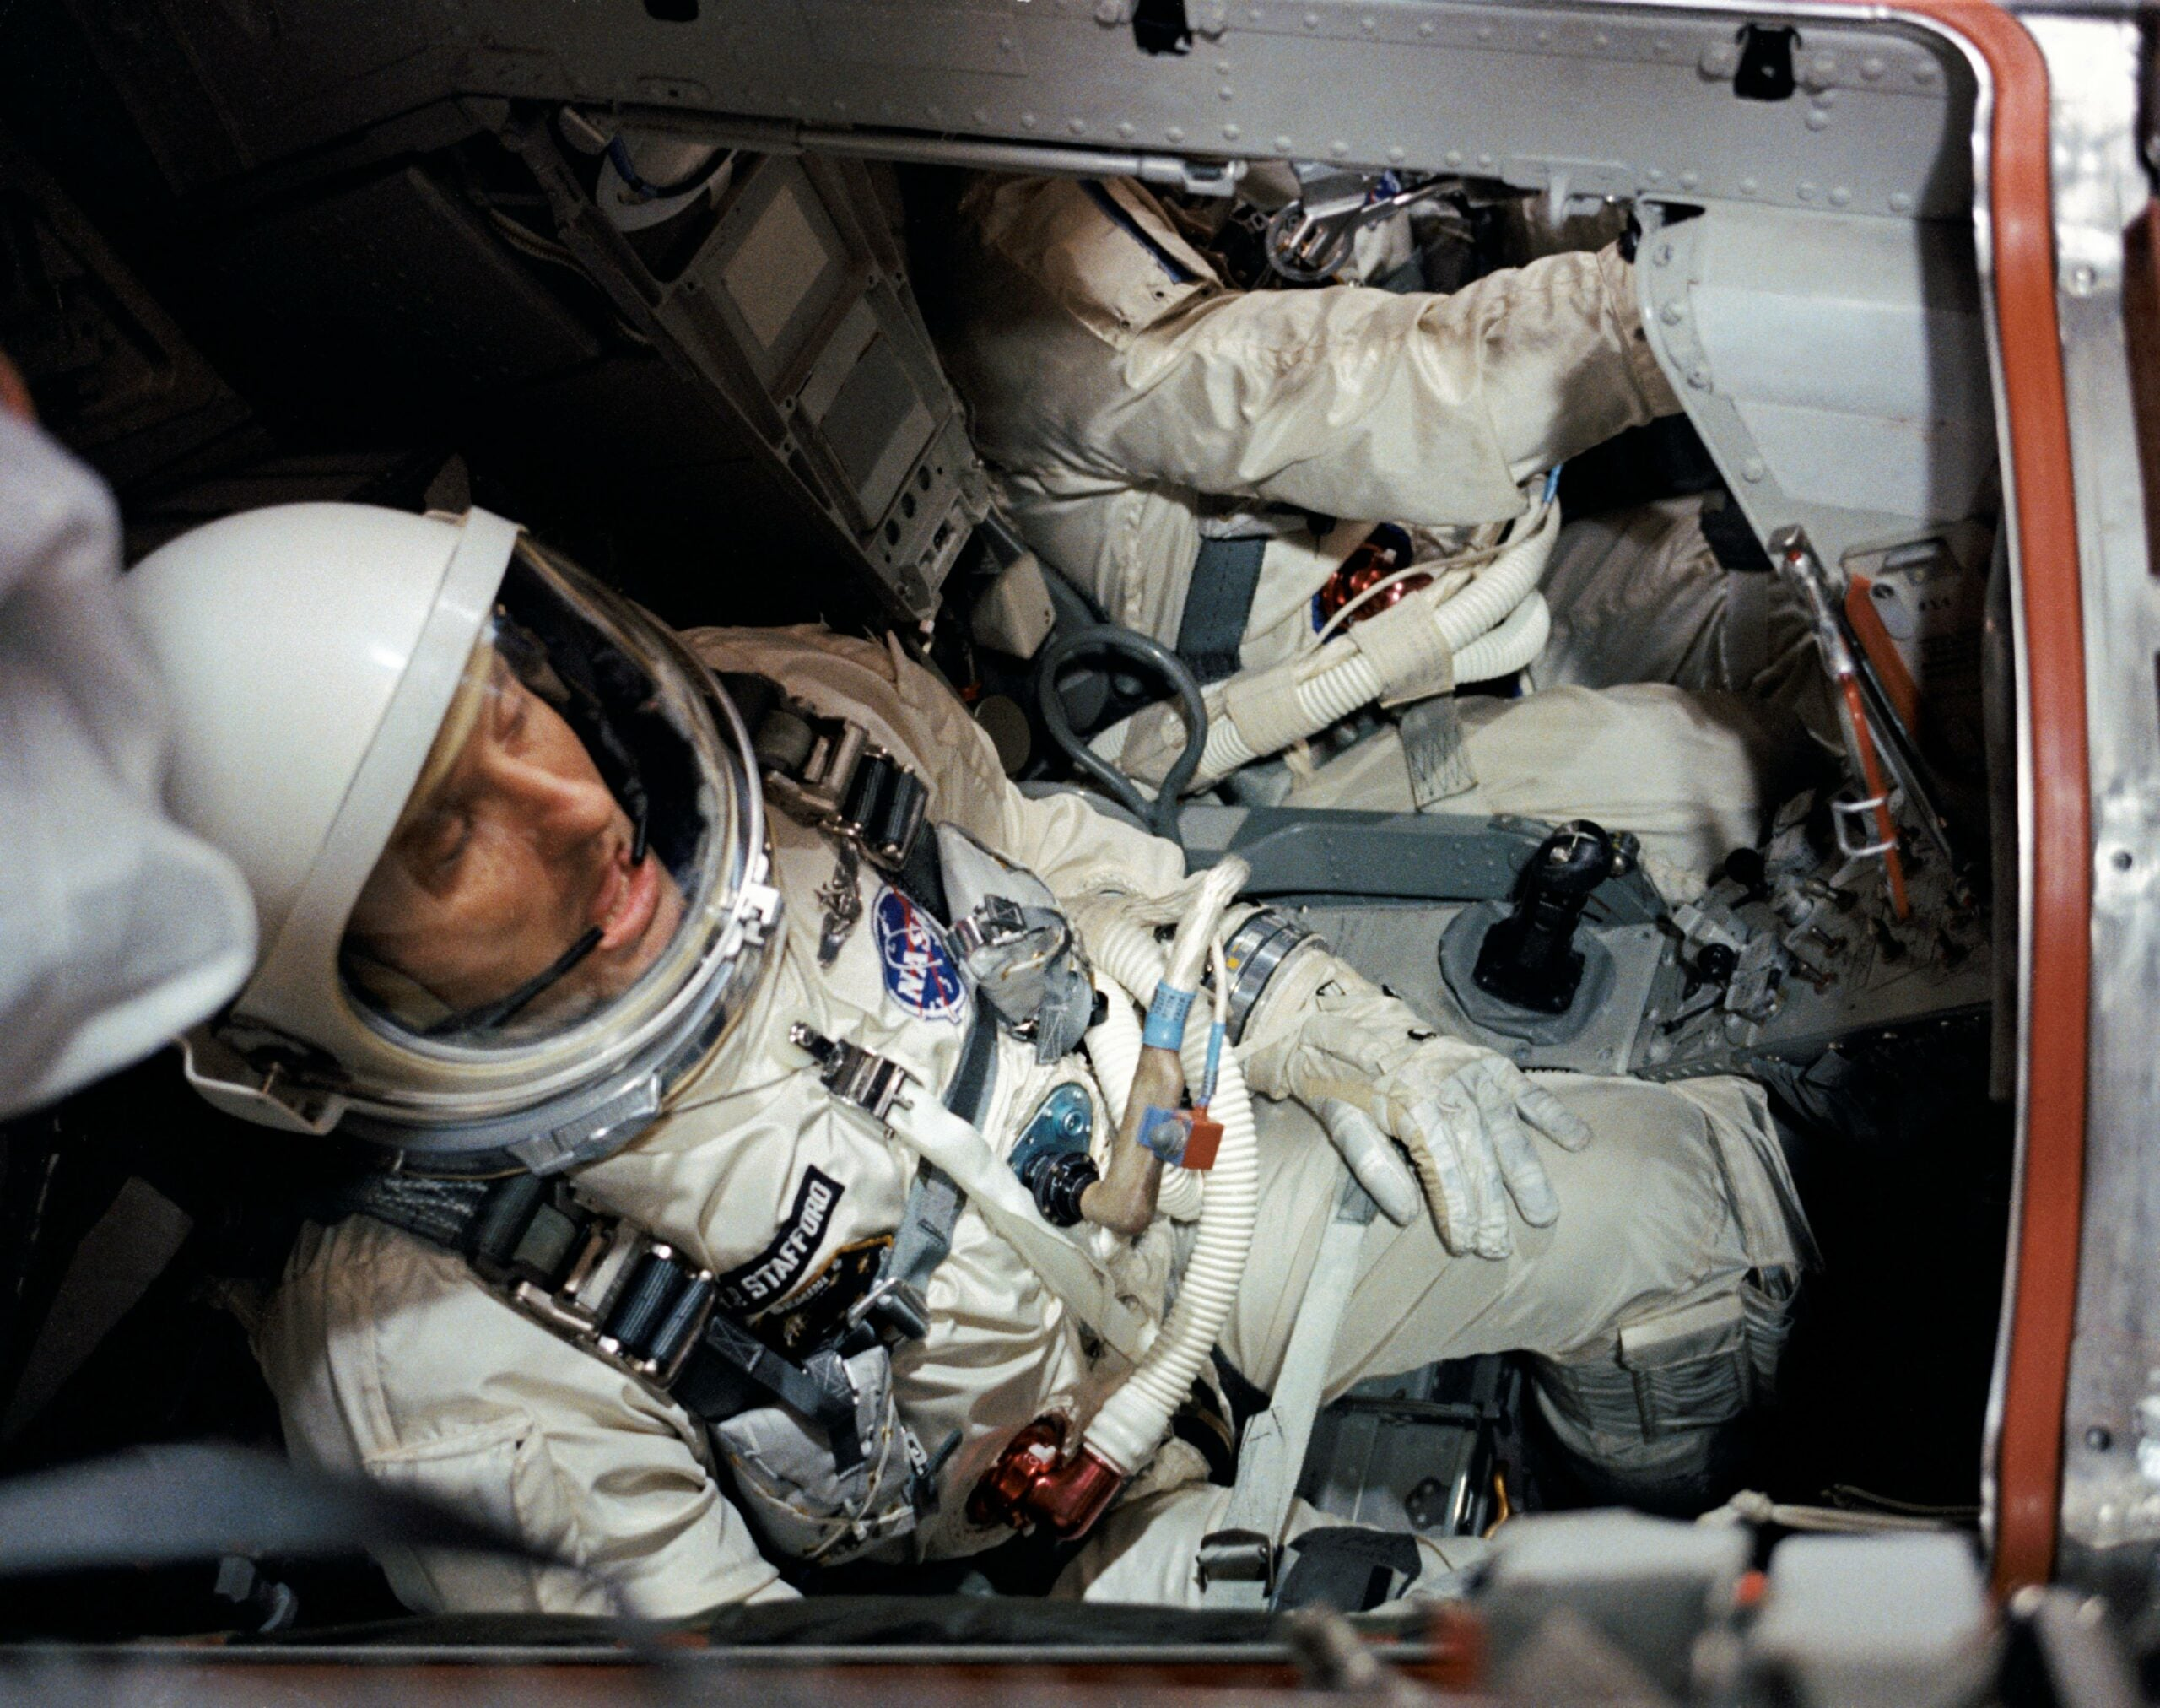 Like Wally Schirra and Tom Stafford Before Her, Lady Gaga Will Perform in Space